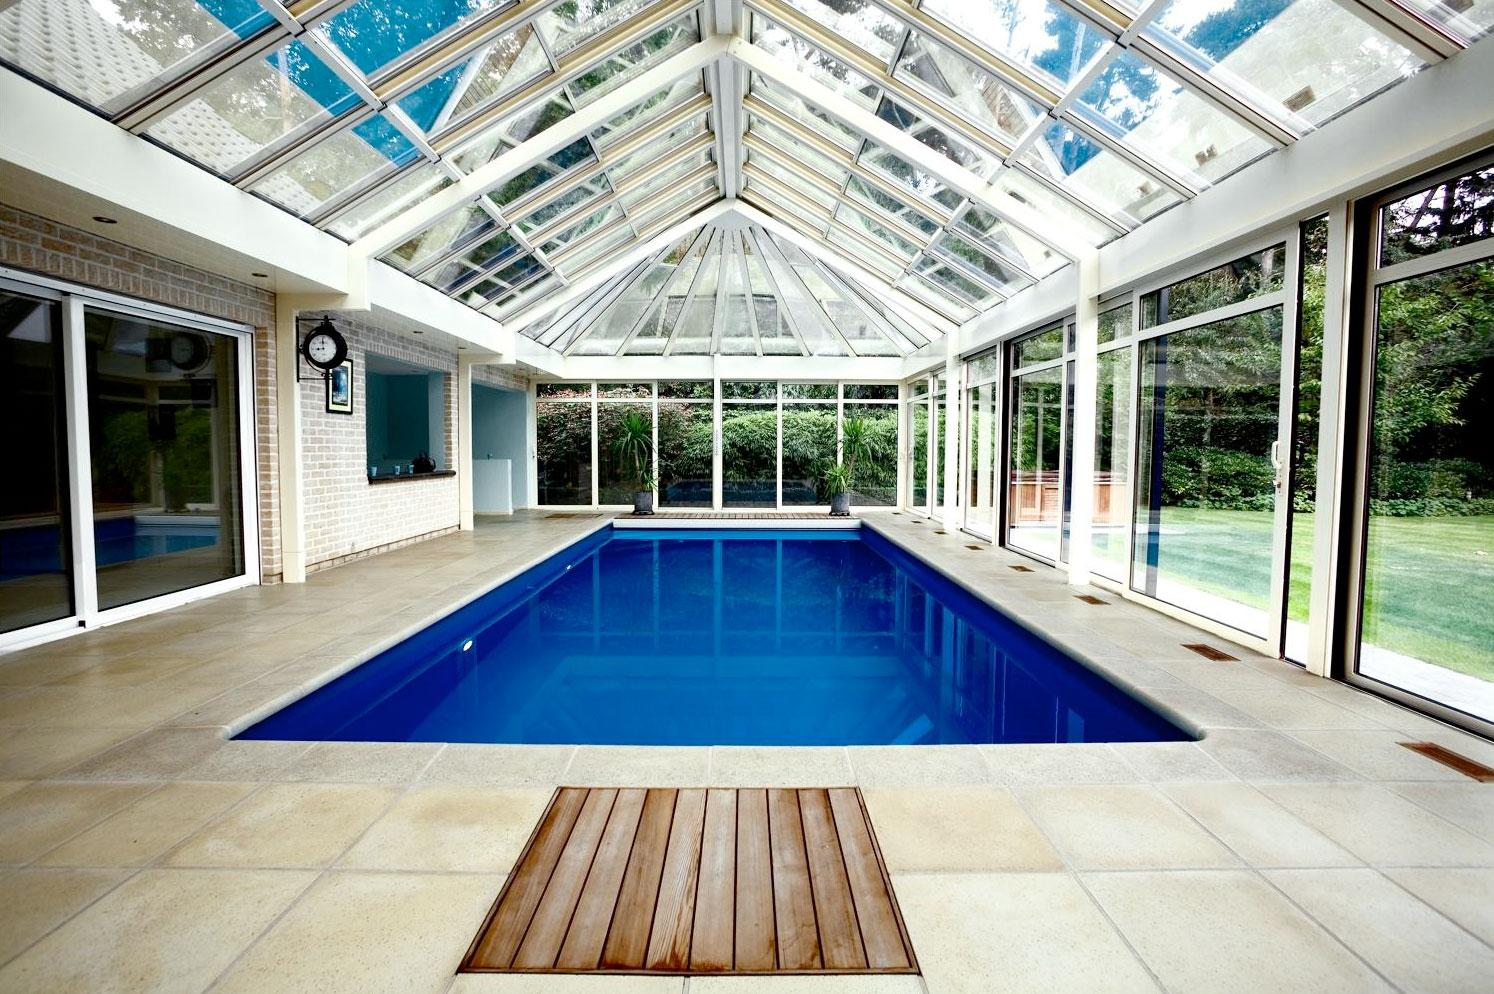 Zenyd En Sliding Roof Applications Swimming Pool